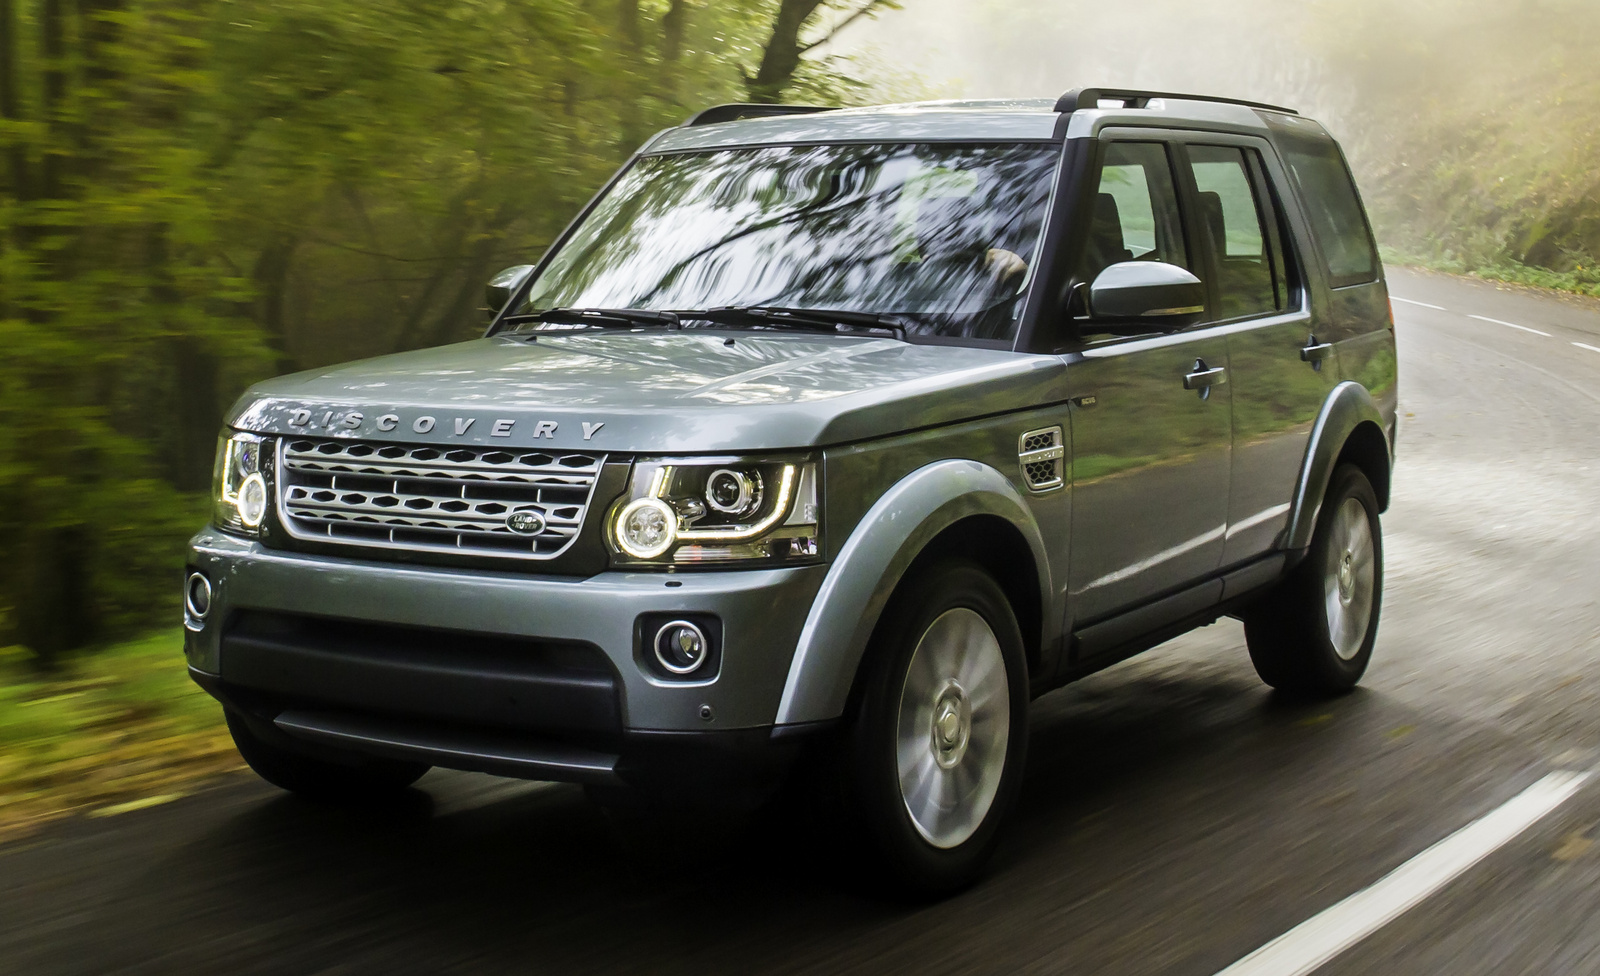 screen land index vehicles system of touch luxury ssc int passenger rover usa cost suv air fs suspension landrover